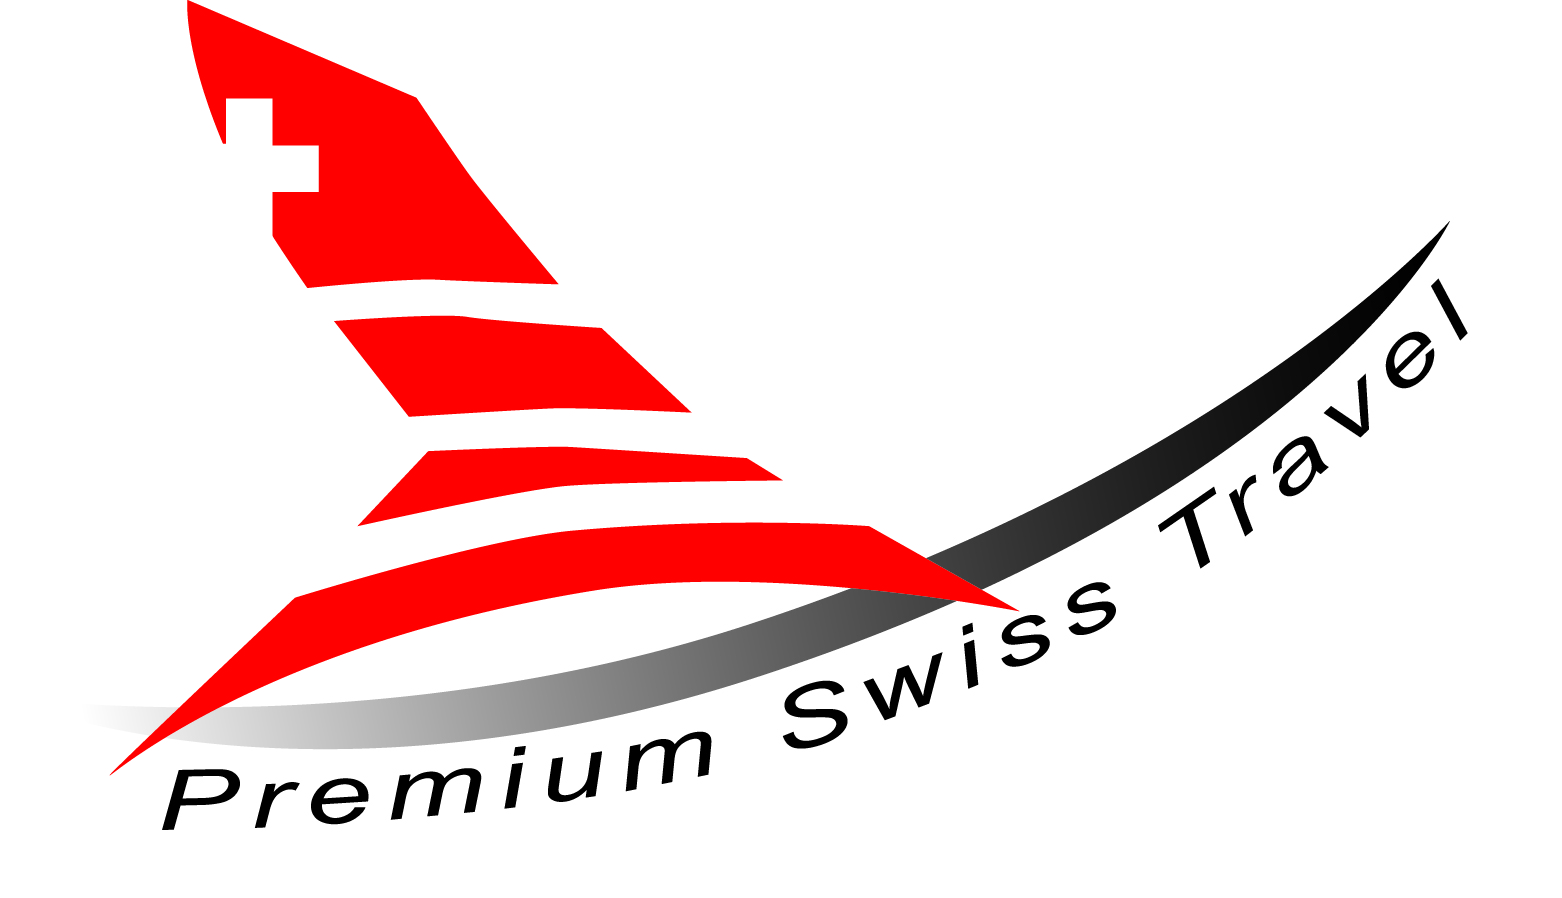 Premium Swiss Travel | Nice - Premium Swiss Travel